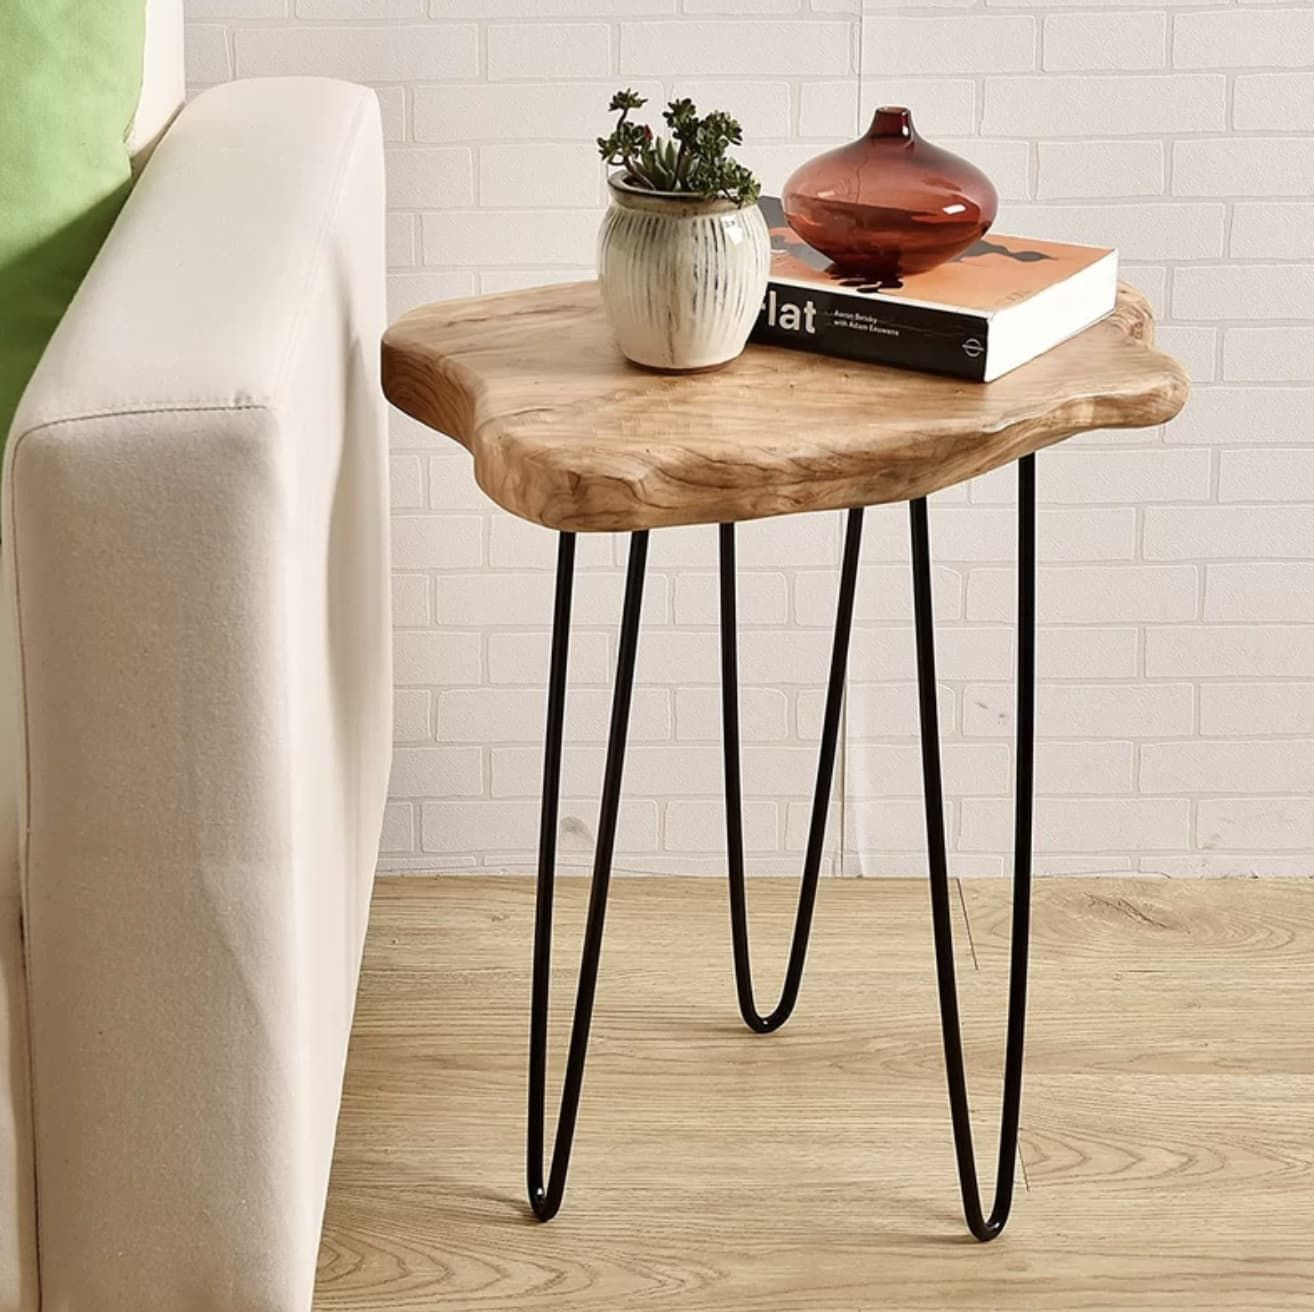 Bring The Outdoors In With These Stylish Wood Slice Tables Side Table Wood Wood End Tables End Tables